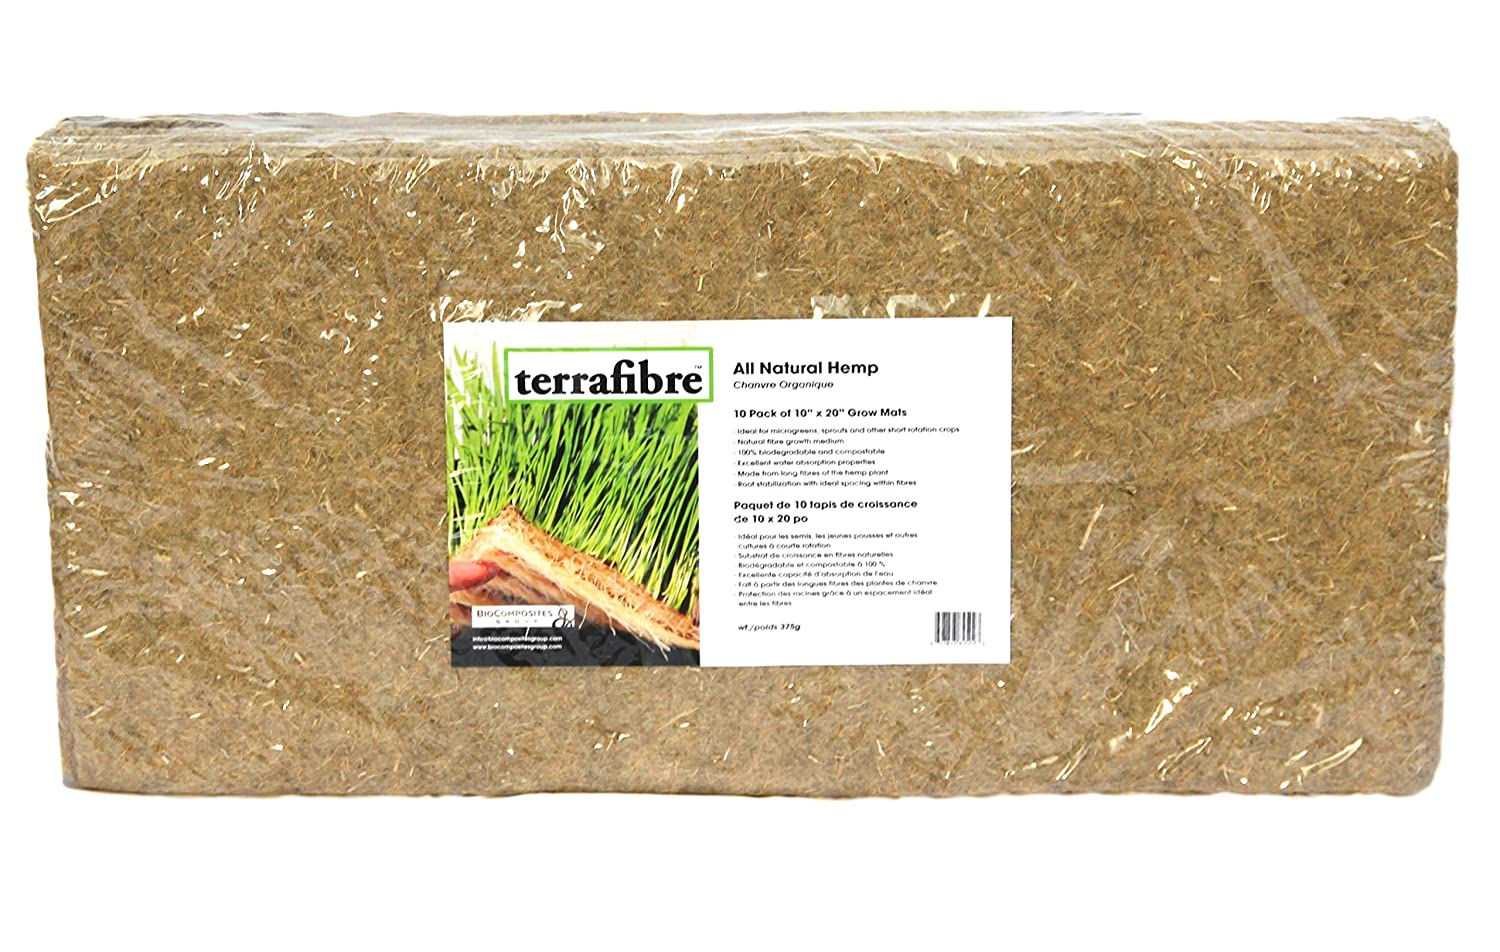 Terrafibre Hemp Grow Mat - Perfect for Microgreens, Wheatgrass, Sprouts - 5 x 5 or 10 x 20 (Fits 5 by 5 Growing Tray or 8 in a Standard 10 X 20 Germination Tray) Environmentally Friendly, Fully Biodegradable - Can be used in Humidity Domes and Hydroponic G